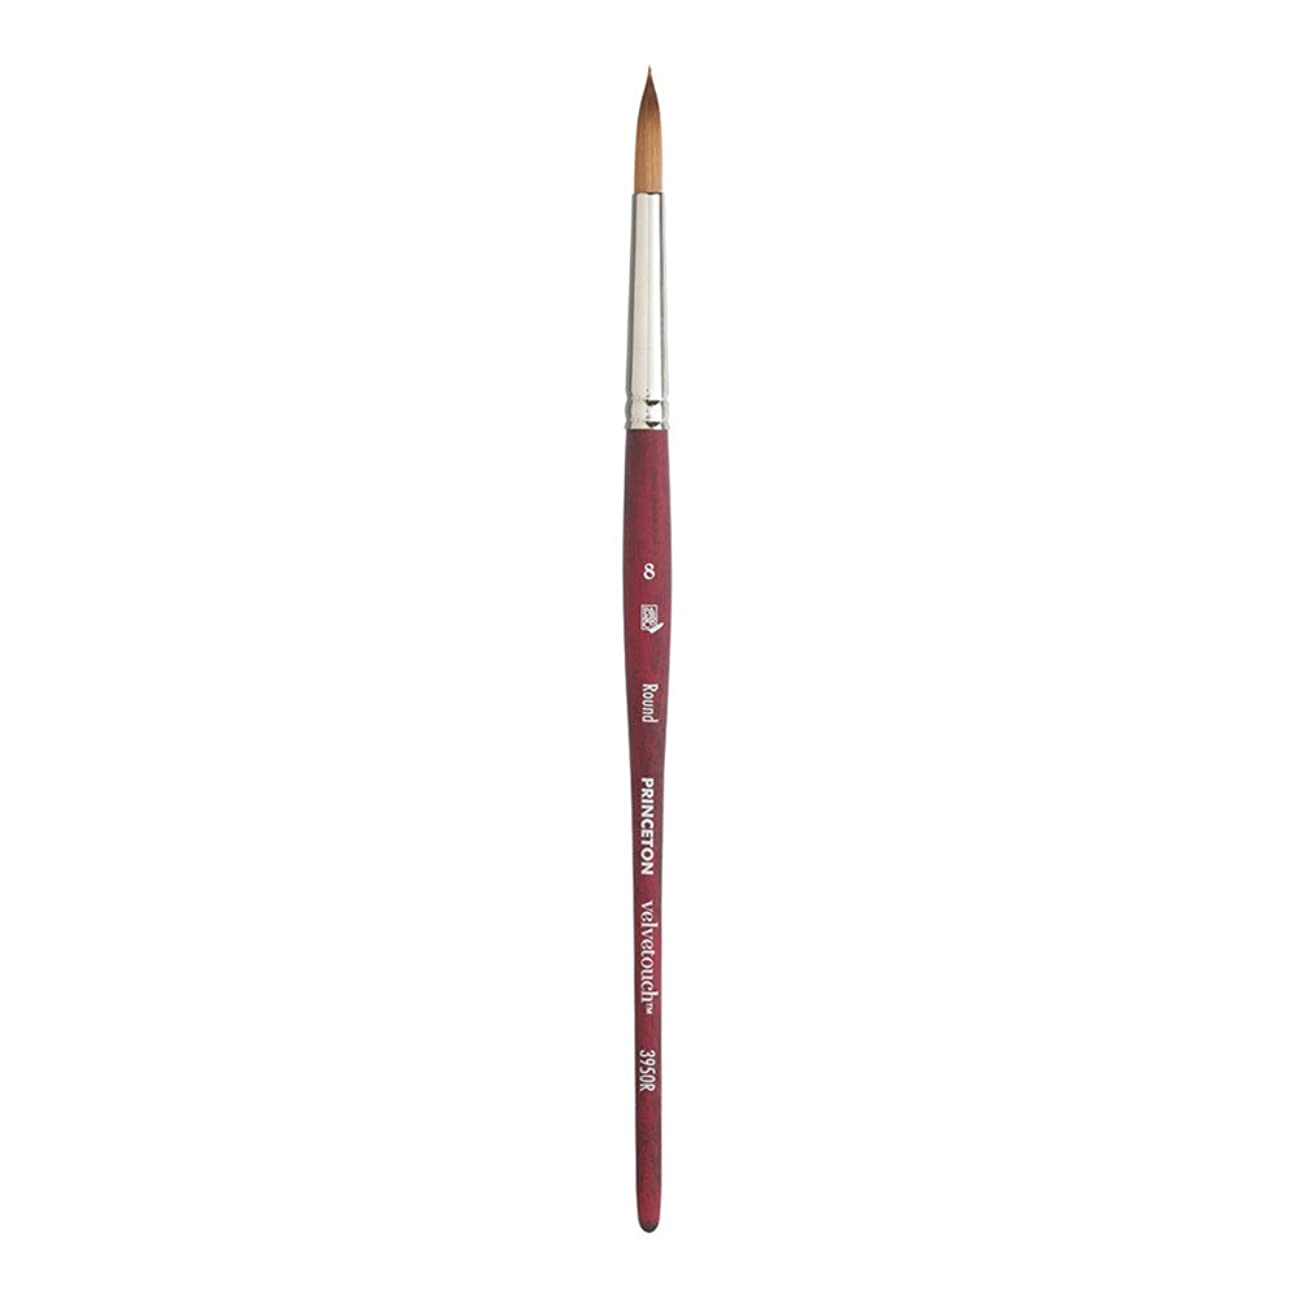 Princeton Velvetouch Artiste, Mixed-Media Brush for Acrylic, Watercolor & Oil, Series 3950 Round Luxury Synthetic, Size 8